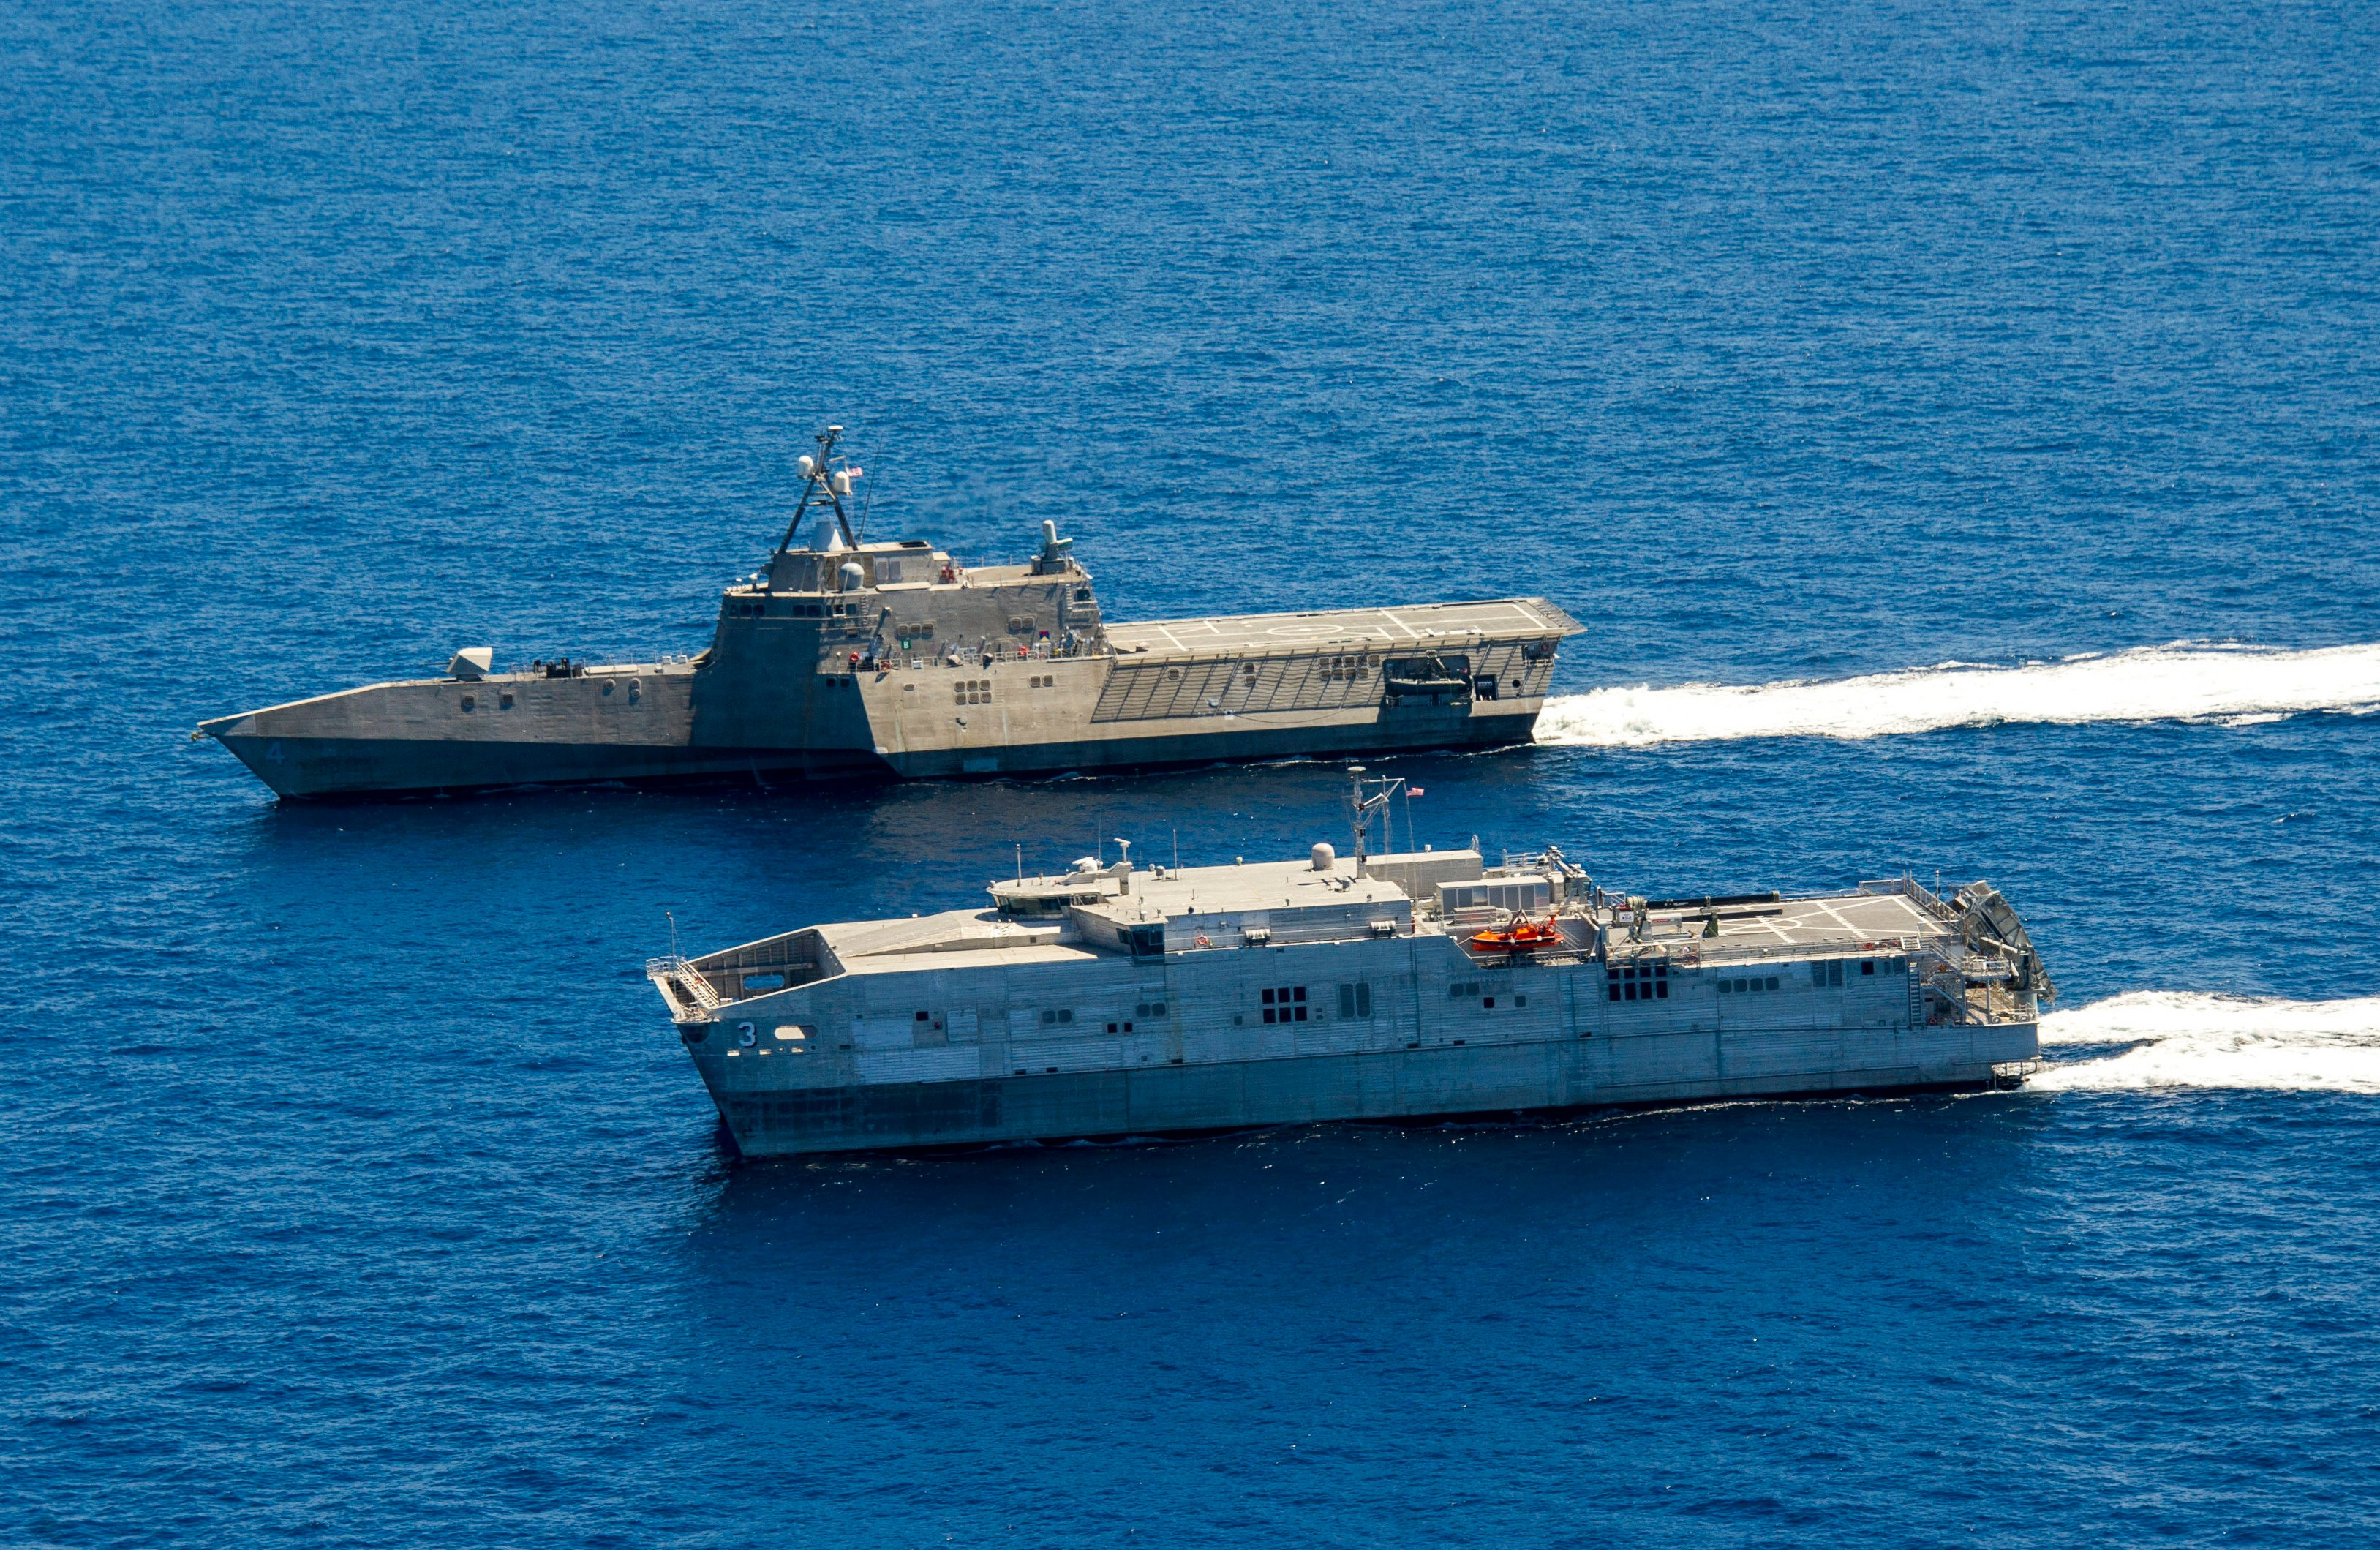 USS Coronado (LCS-4) and the joint high speed vessel USNS Millinocket (JHSV-3) on July 11, 2014. US Navy Photo